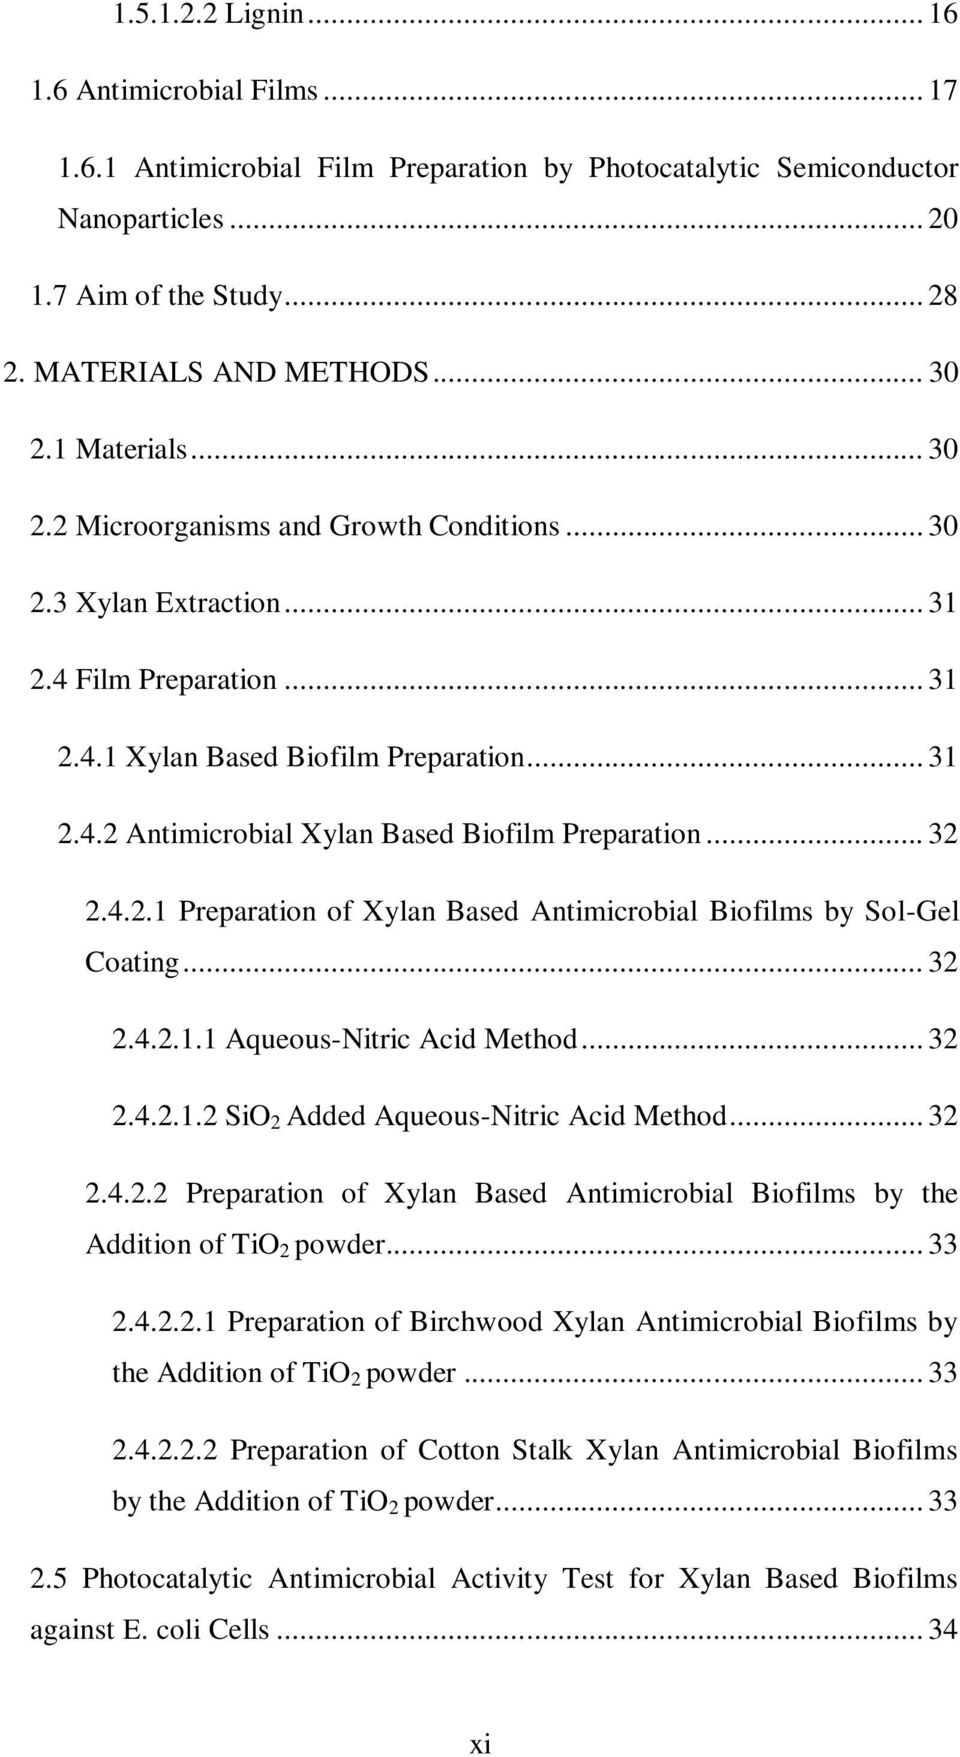 .. 32 2.4.2.1 Preparation of Xylan Based Antimicrobial Biofilms by Sol-Gel Coating... 32 2.4.2.1.1 Aqueous-Nitric Acid Method... 32 2.4.2.1.2 SiO 2 Added Aqueous-Nitric Acid Method... 32 2.4.2.2 Preparation of Xylan Based Antimicrobial Biofilms by the Addition of TiO 2 powder.